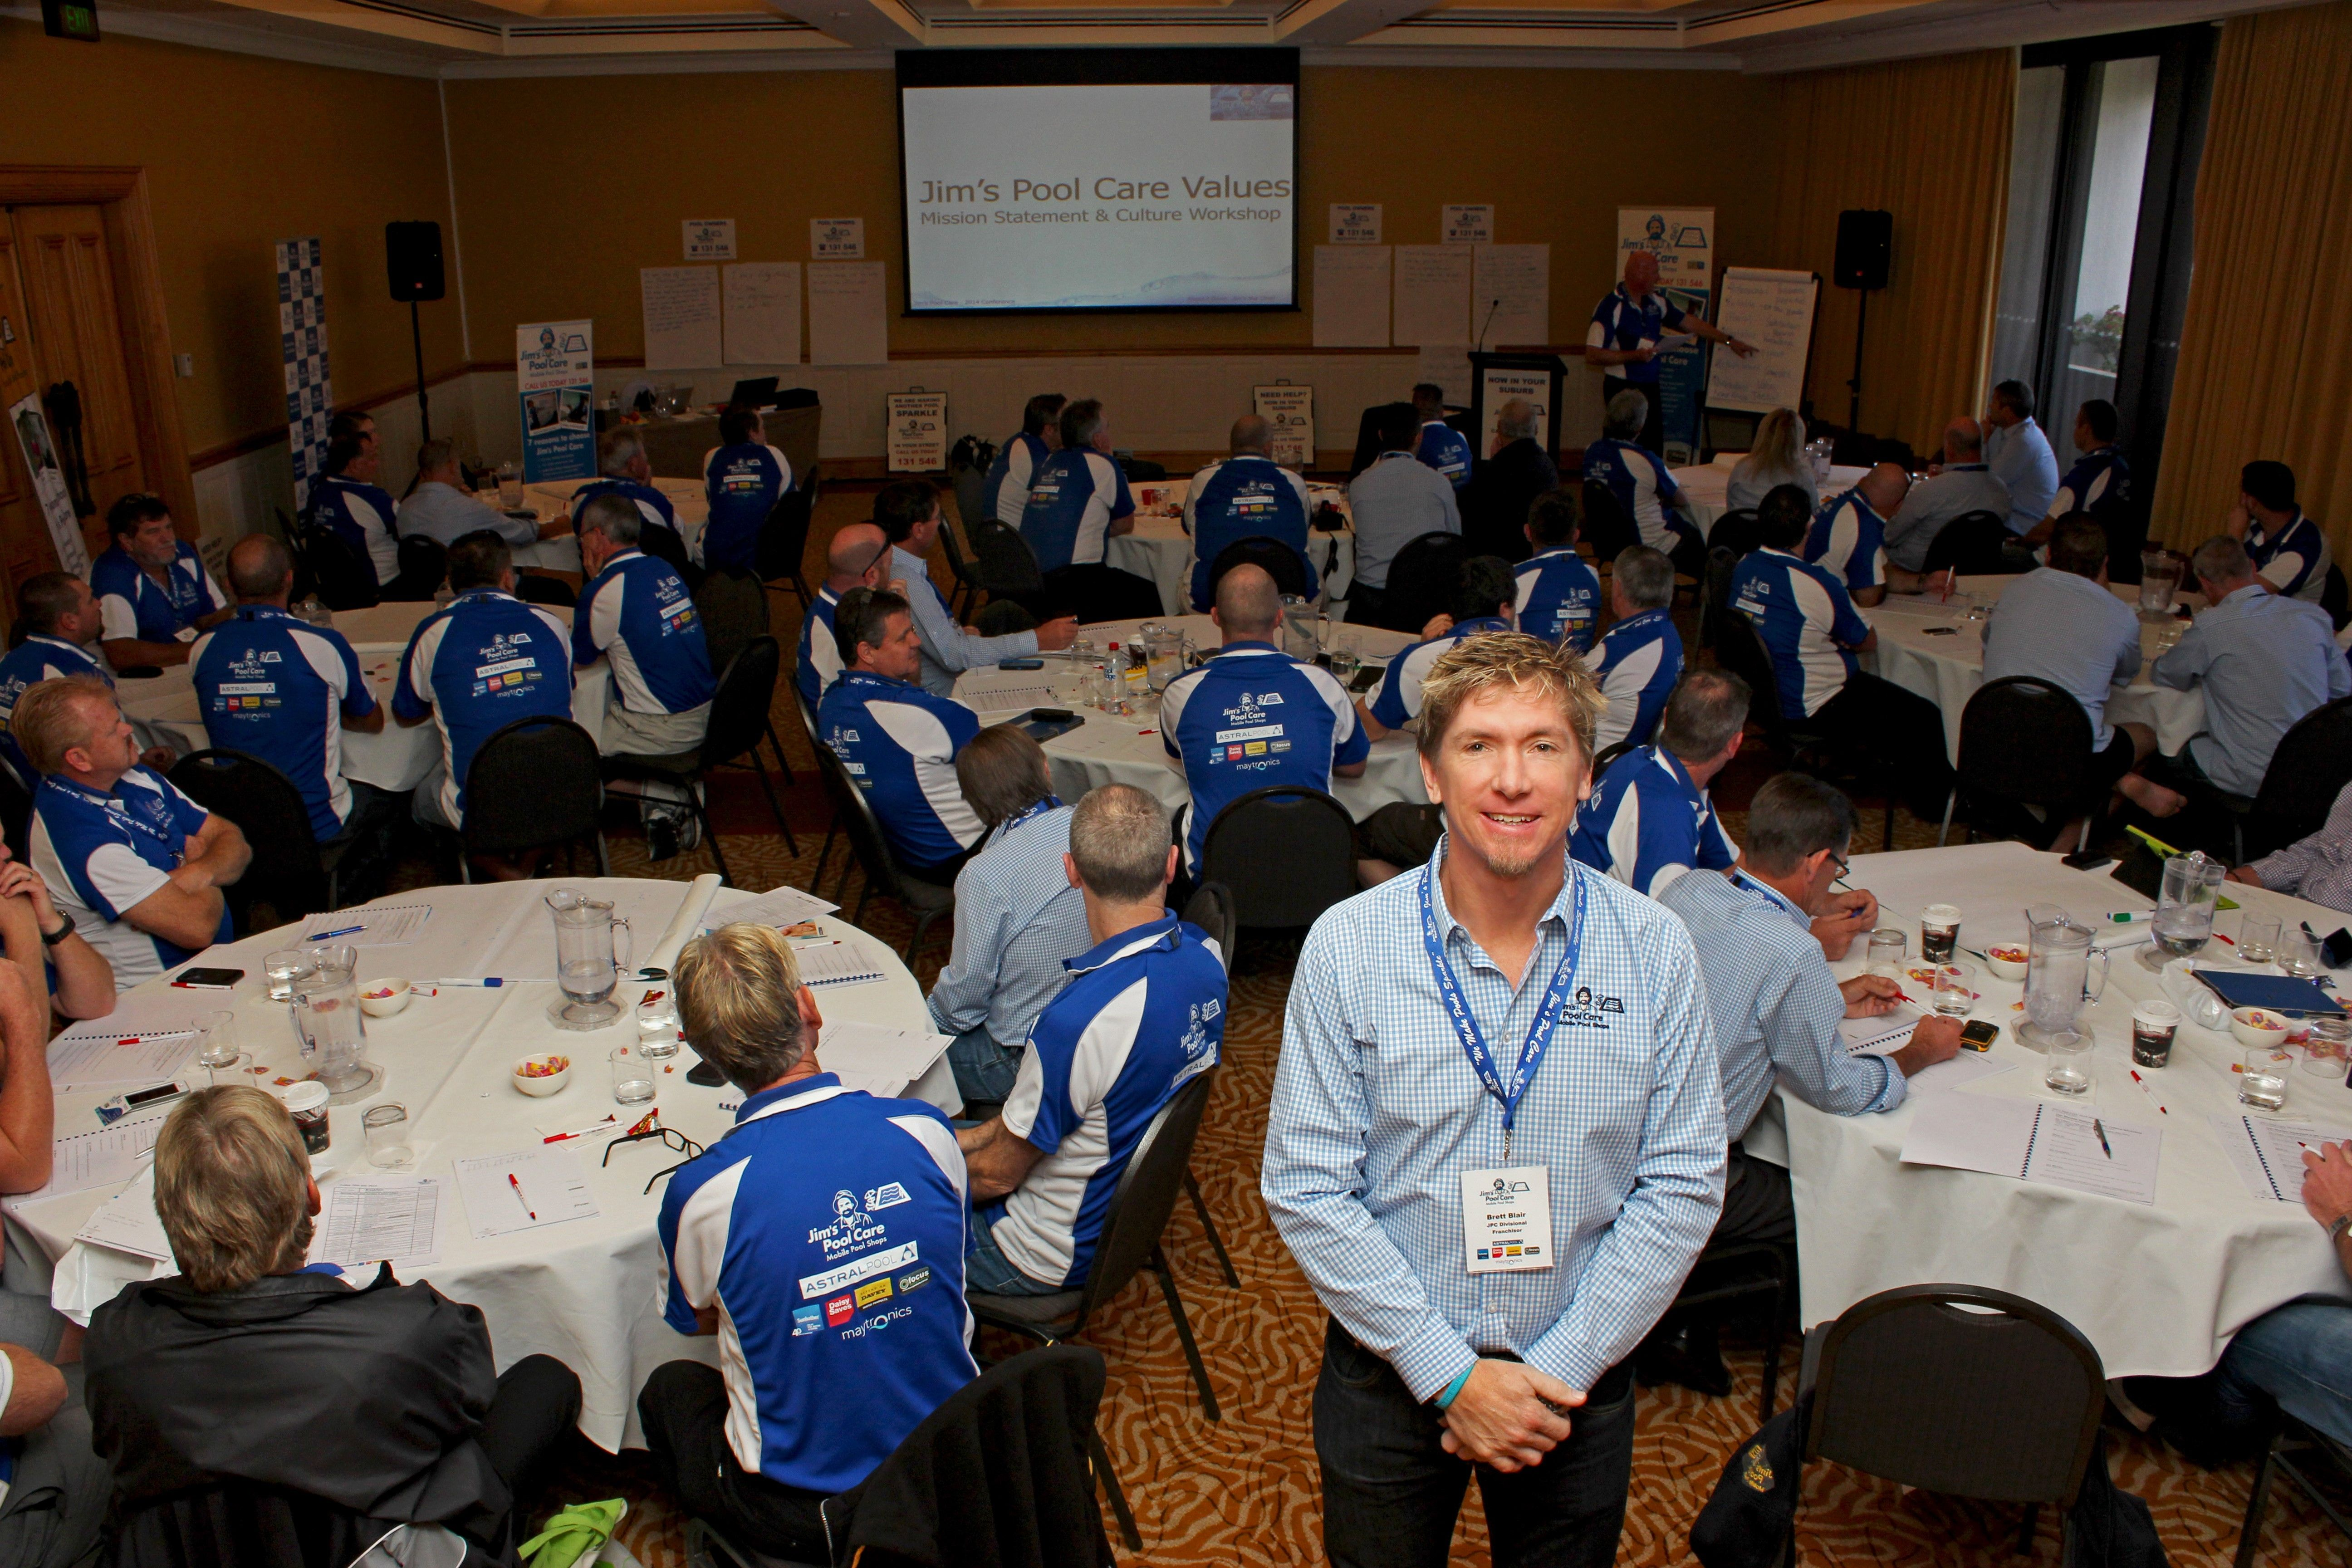 Jim's Pool Care cancels conference | Inside Franchise Business Executive